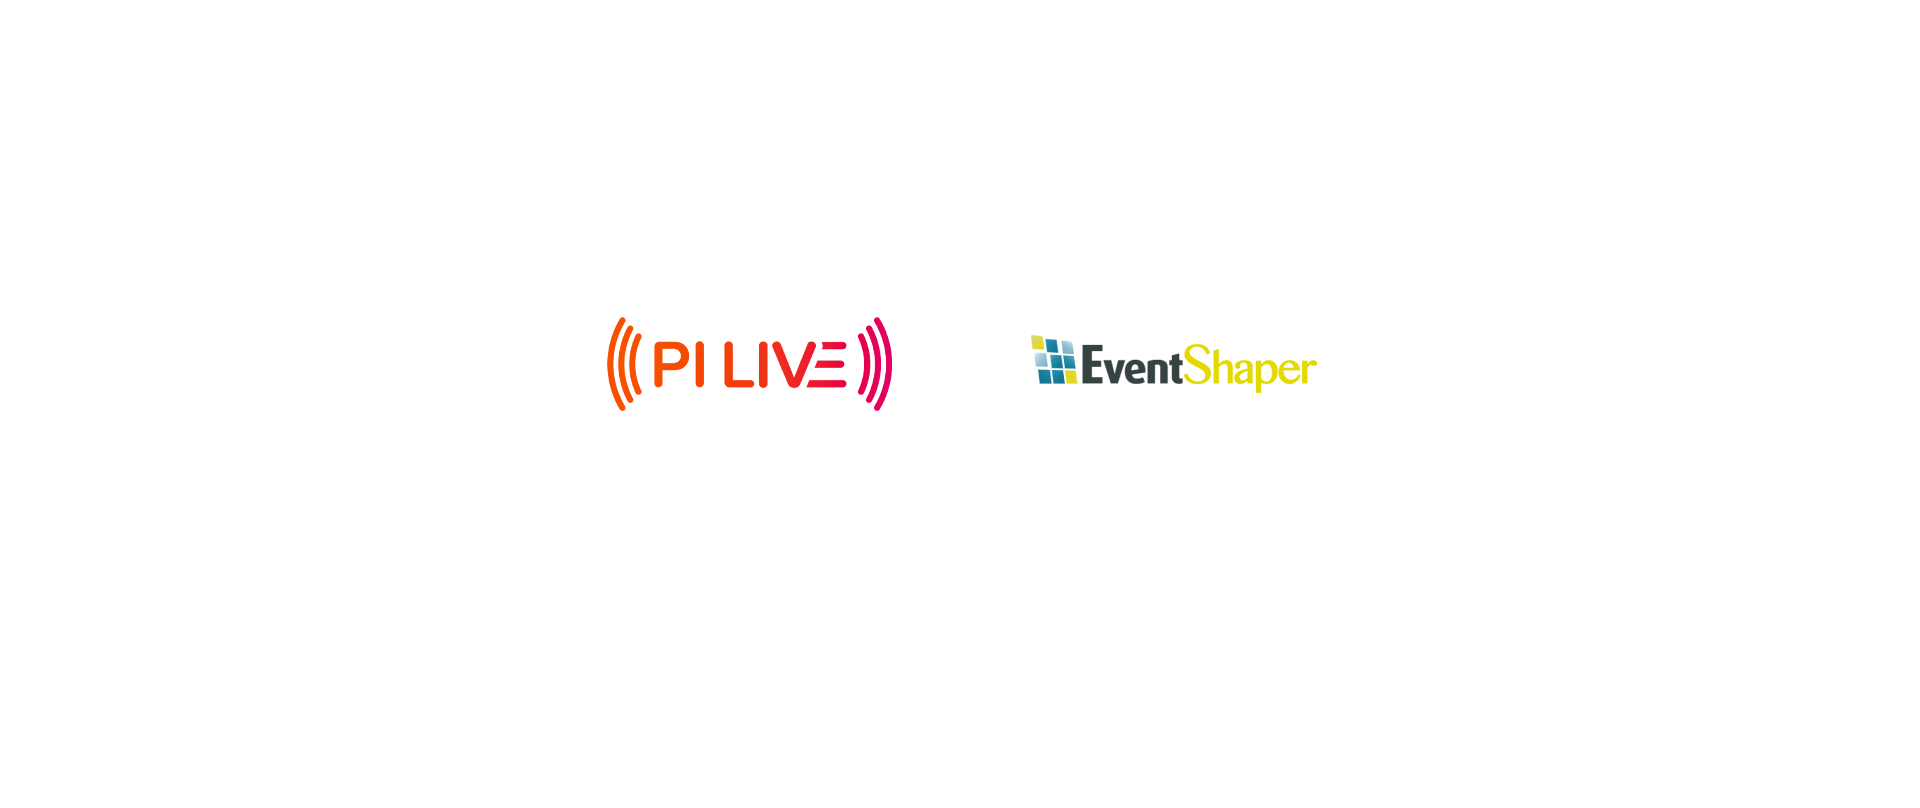 PI Live and Event Shaper Testimonials